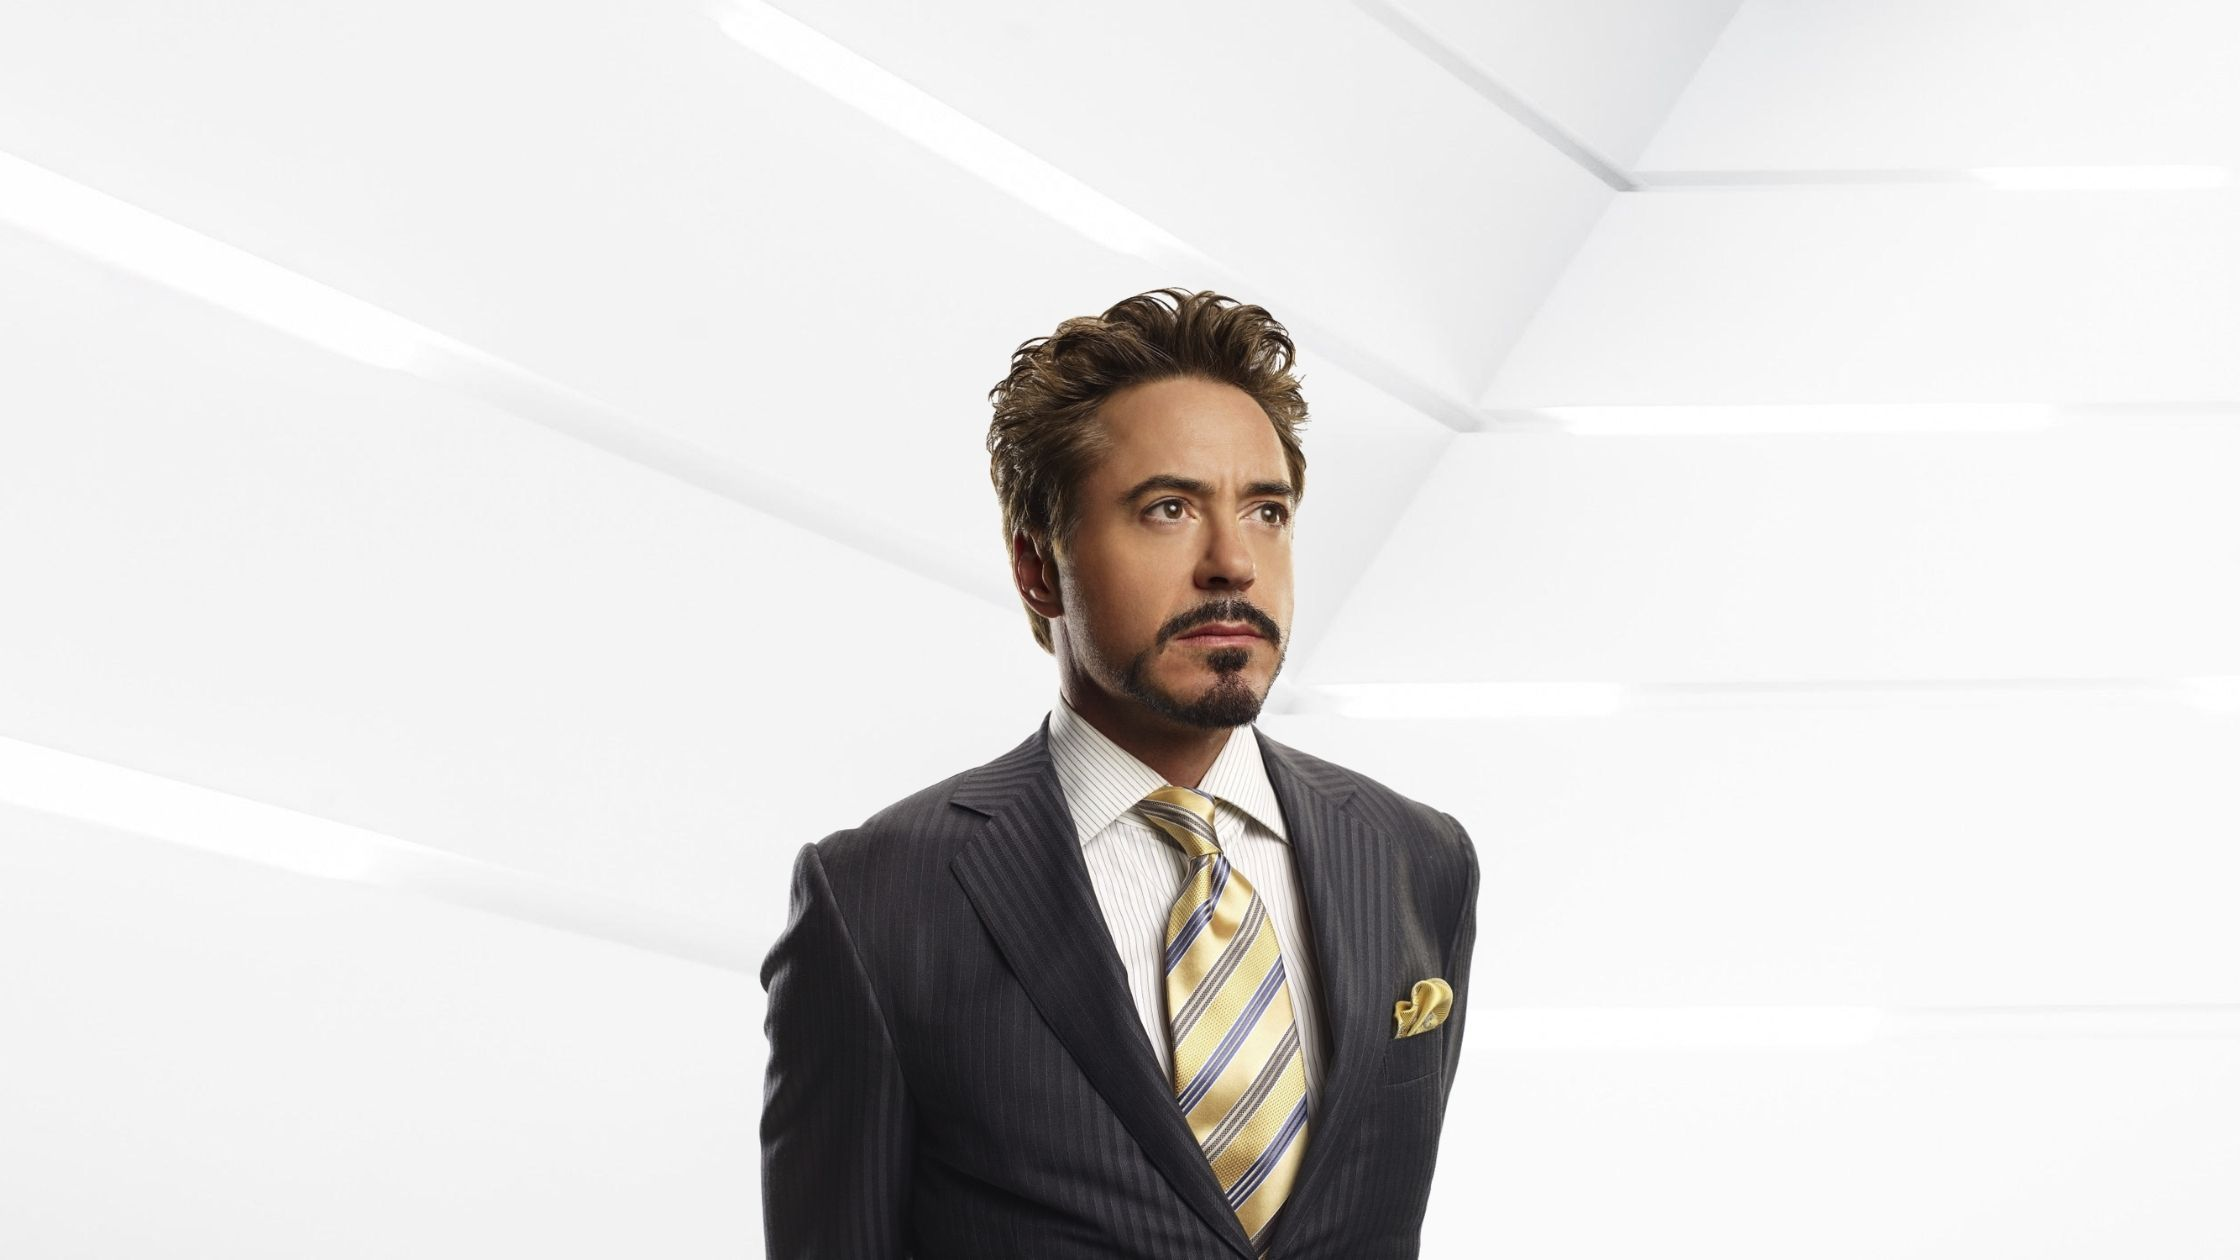 Tony Stark Beard style is GameChanger